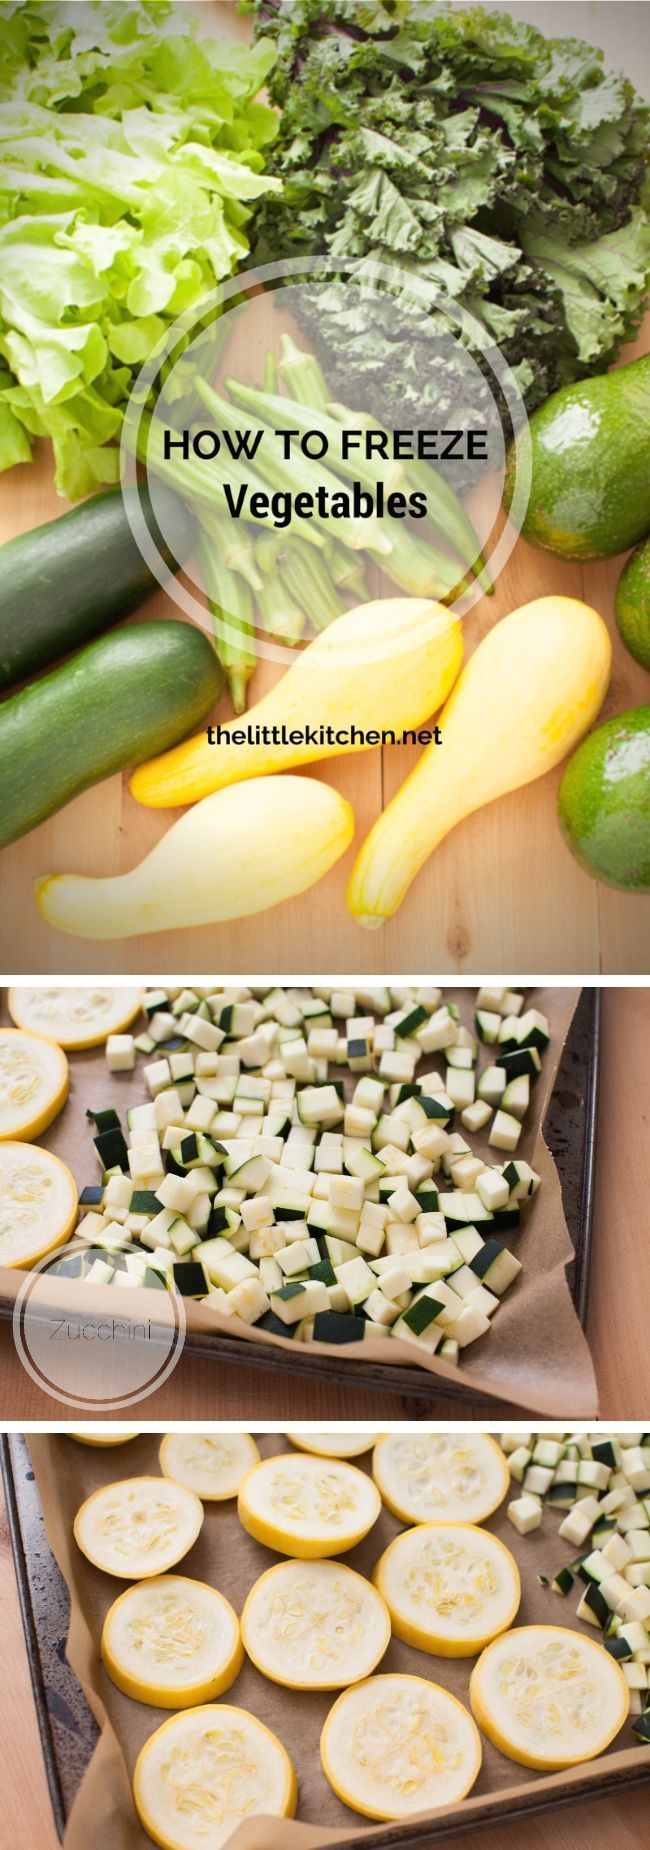 How To Freeze Vegetables From Thelittlekitchen